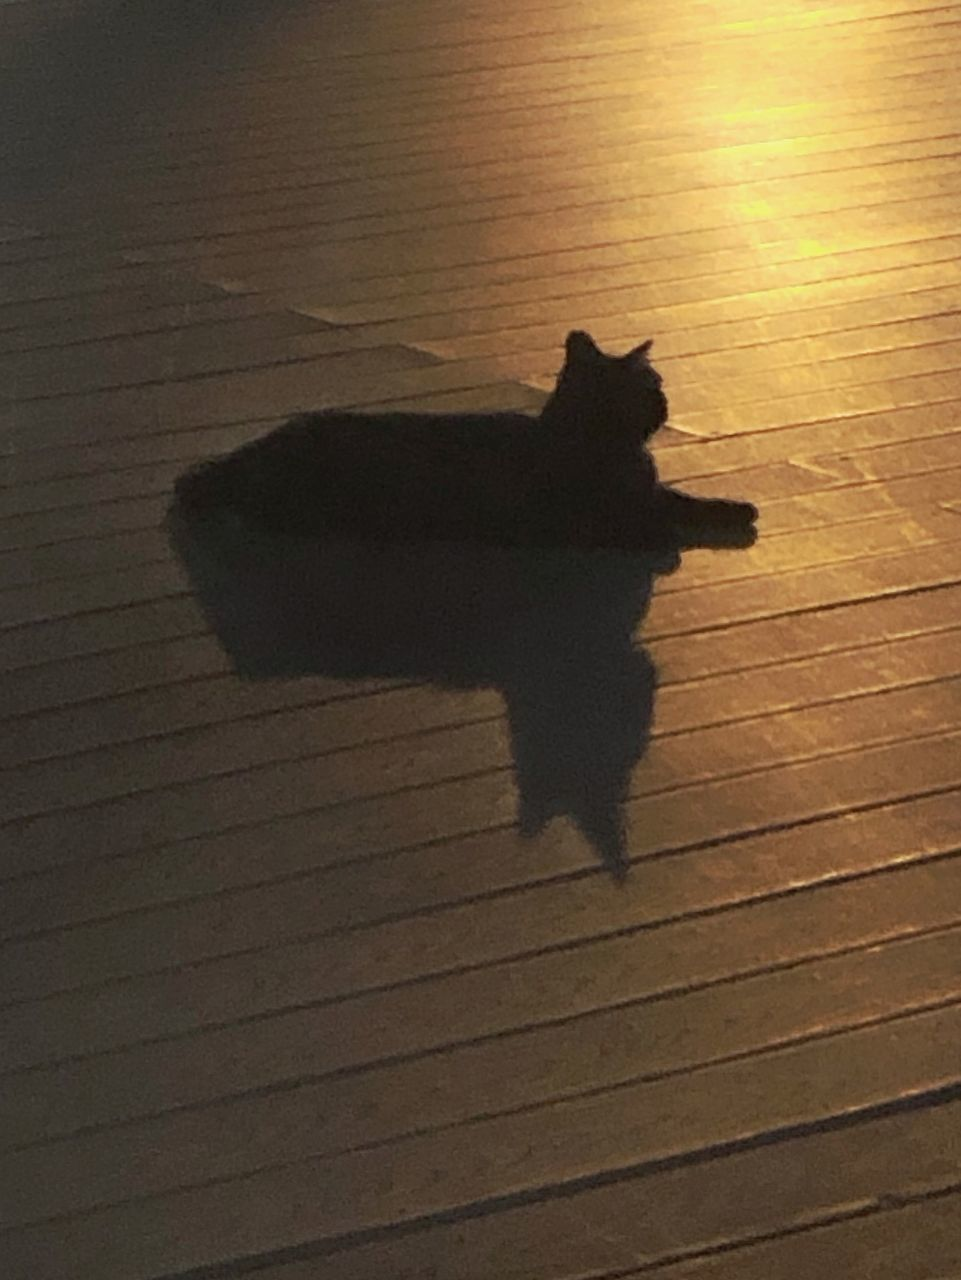 HIGH ANGLE VIEW OF CAT SHADOW ON HARDWOOD FLOOR